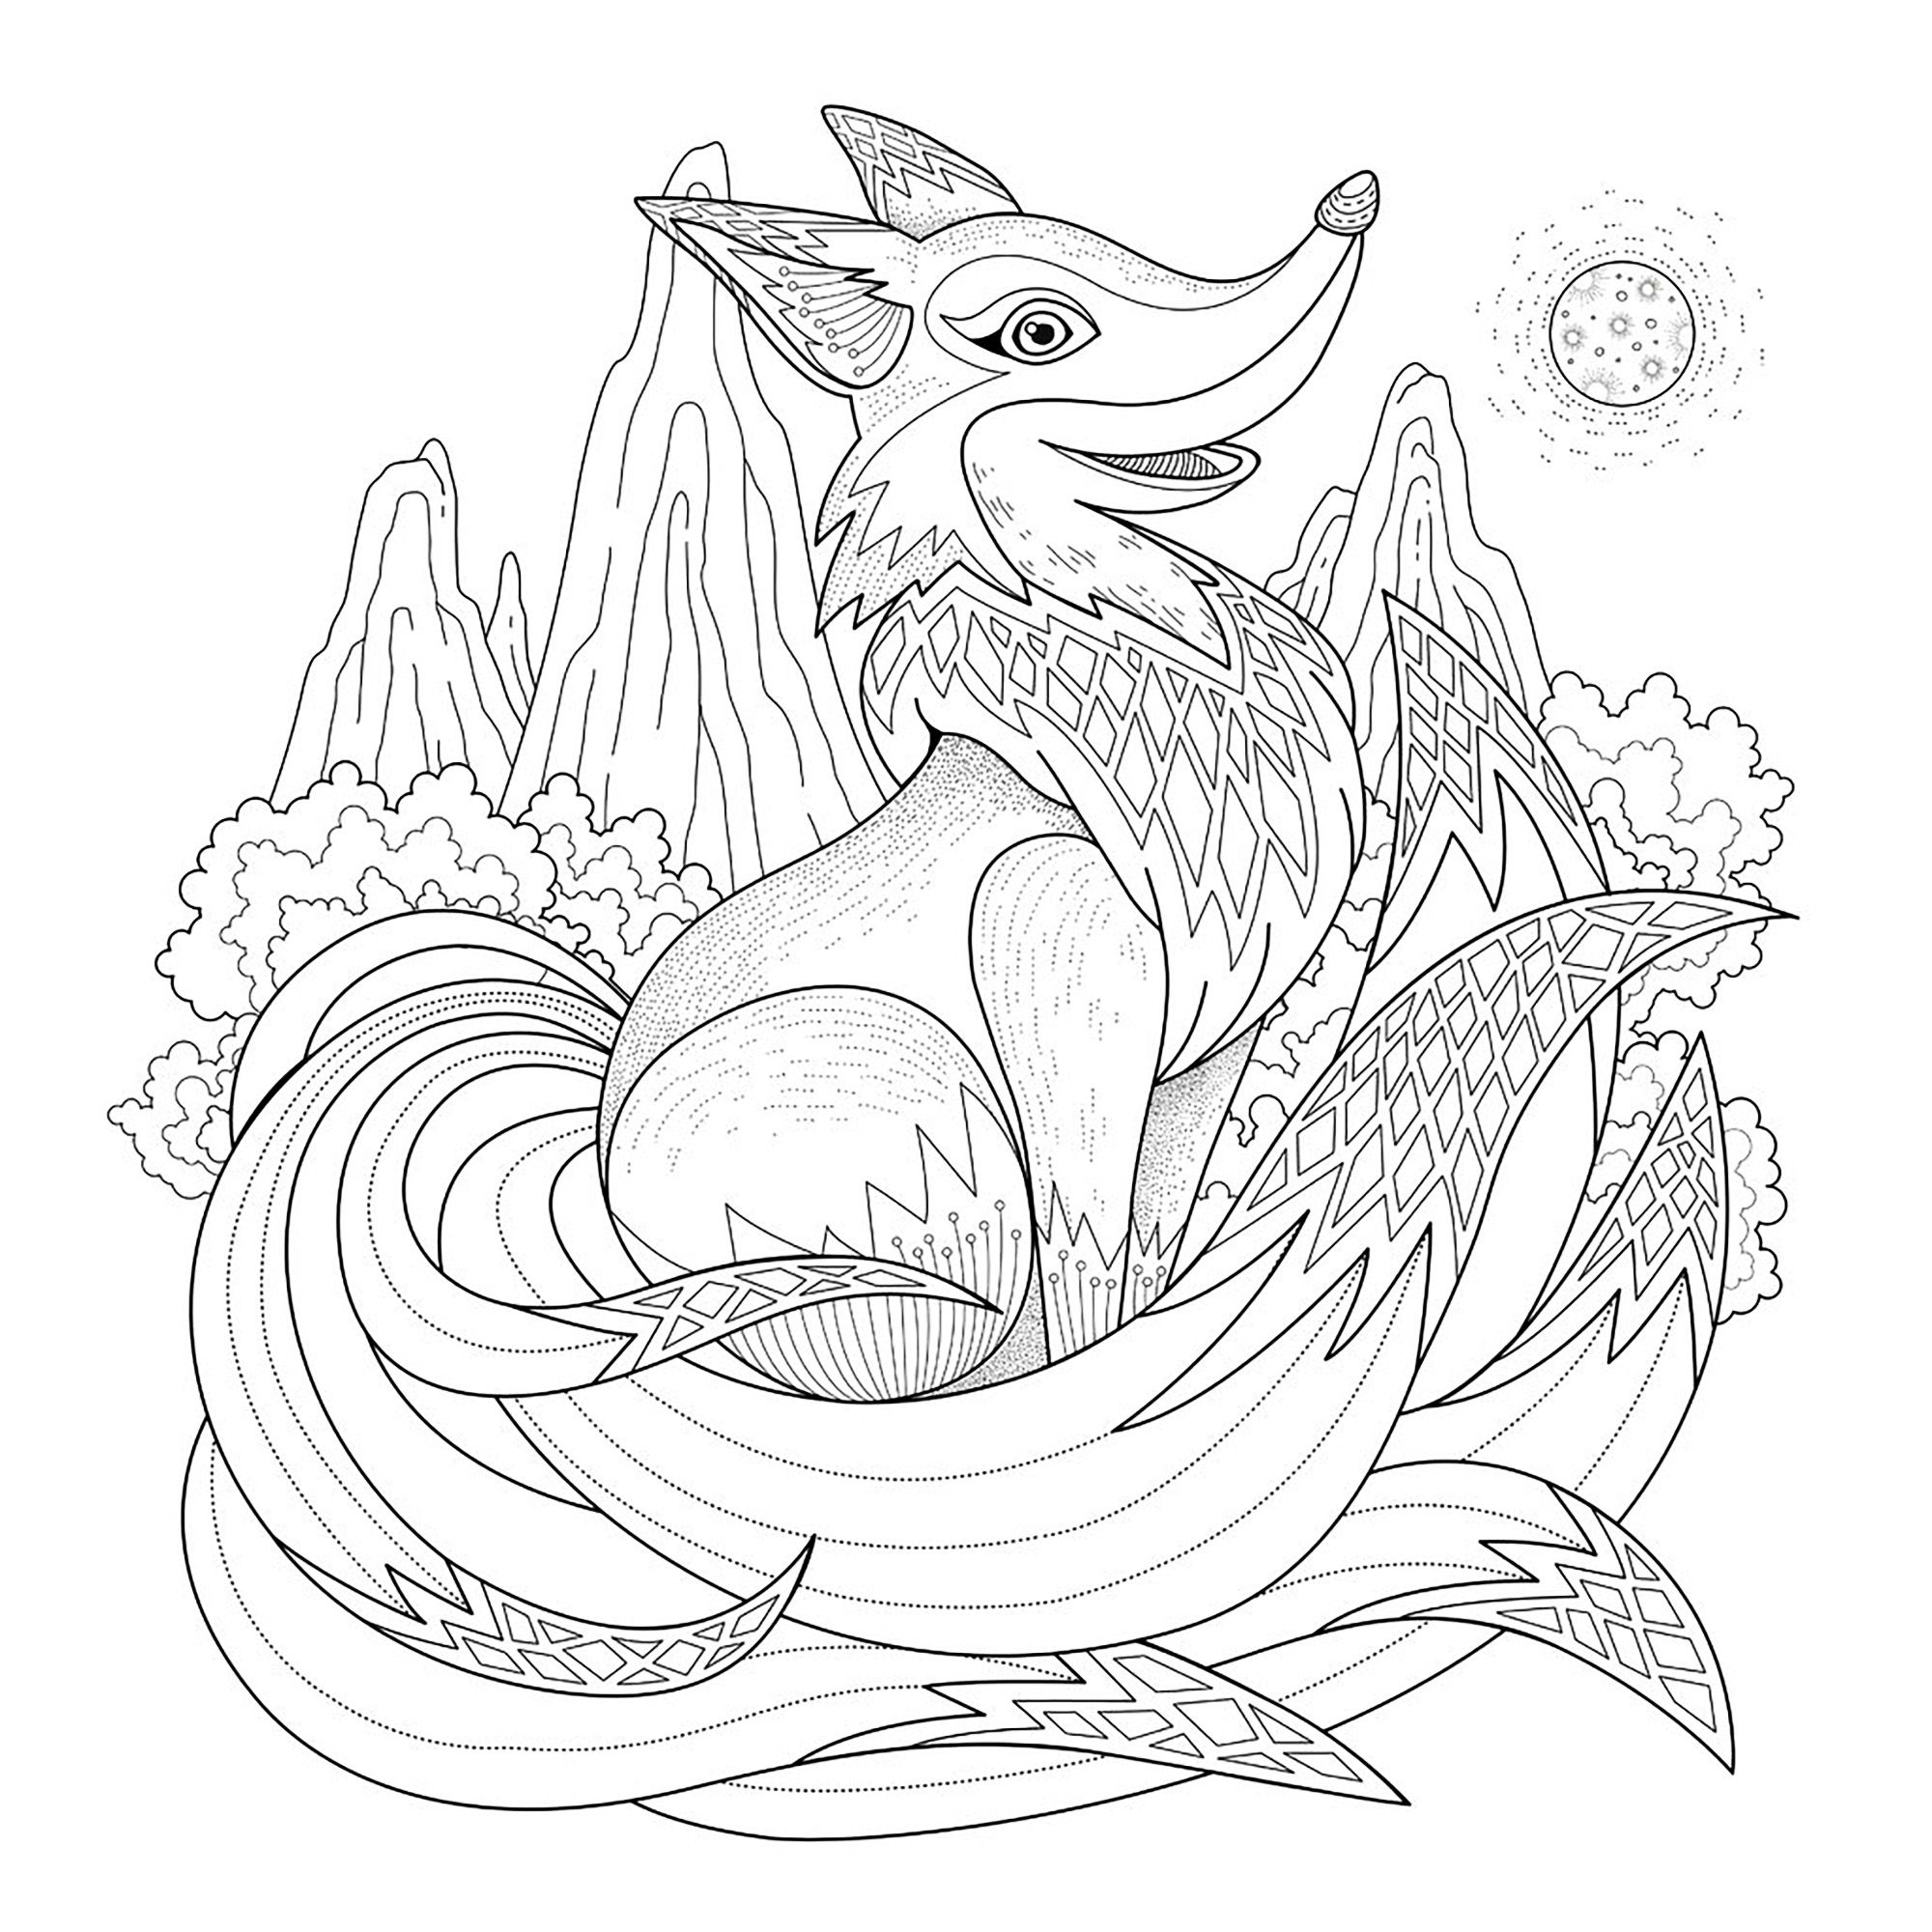 Christmas Elephant Coloring Pages With Graceful Fox Page In Exquisite StyleFrom The Gallery 2016